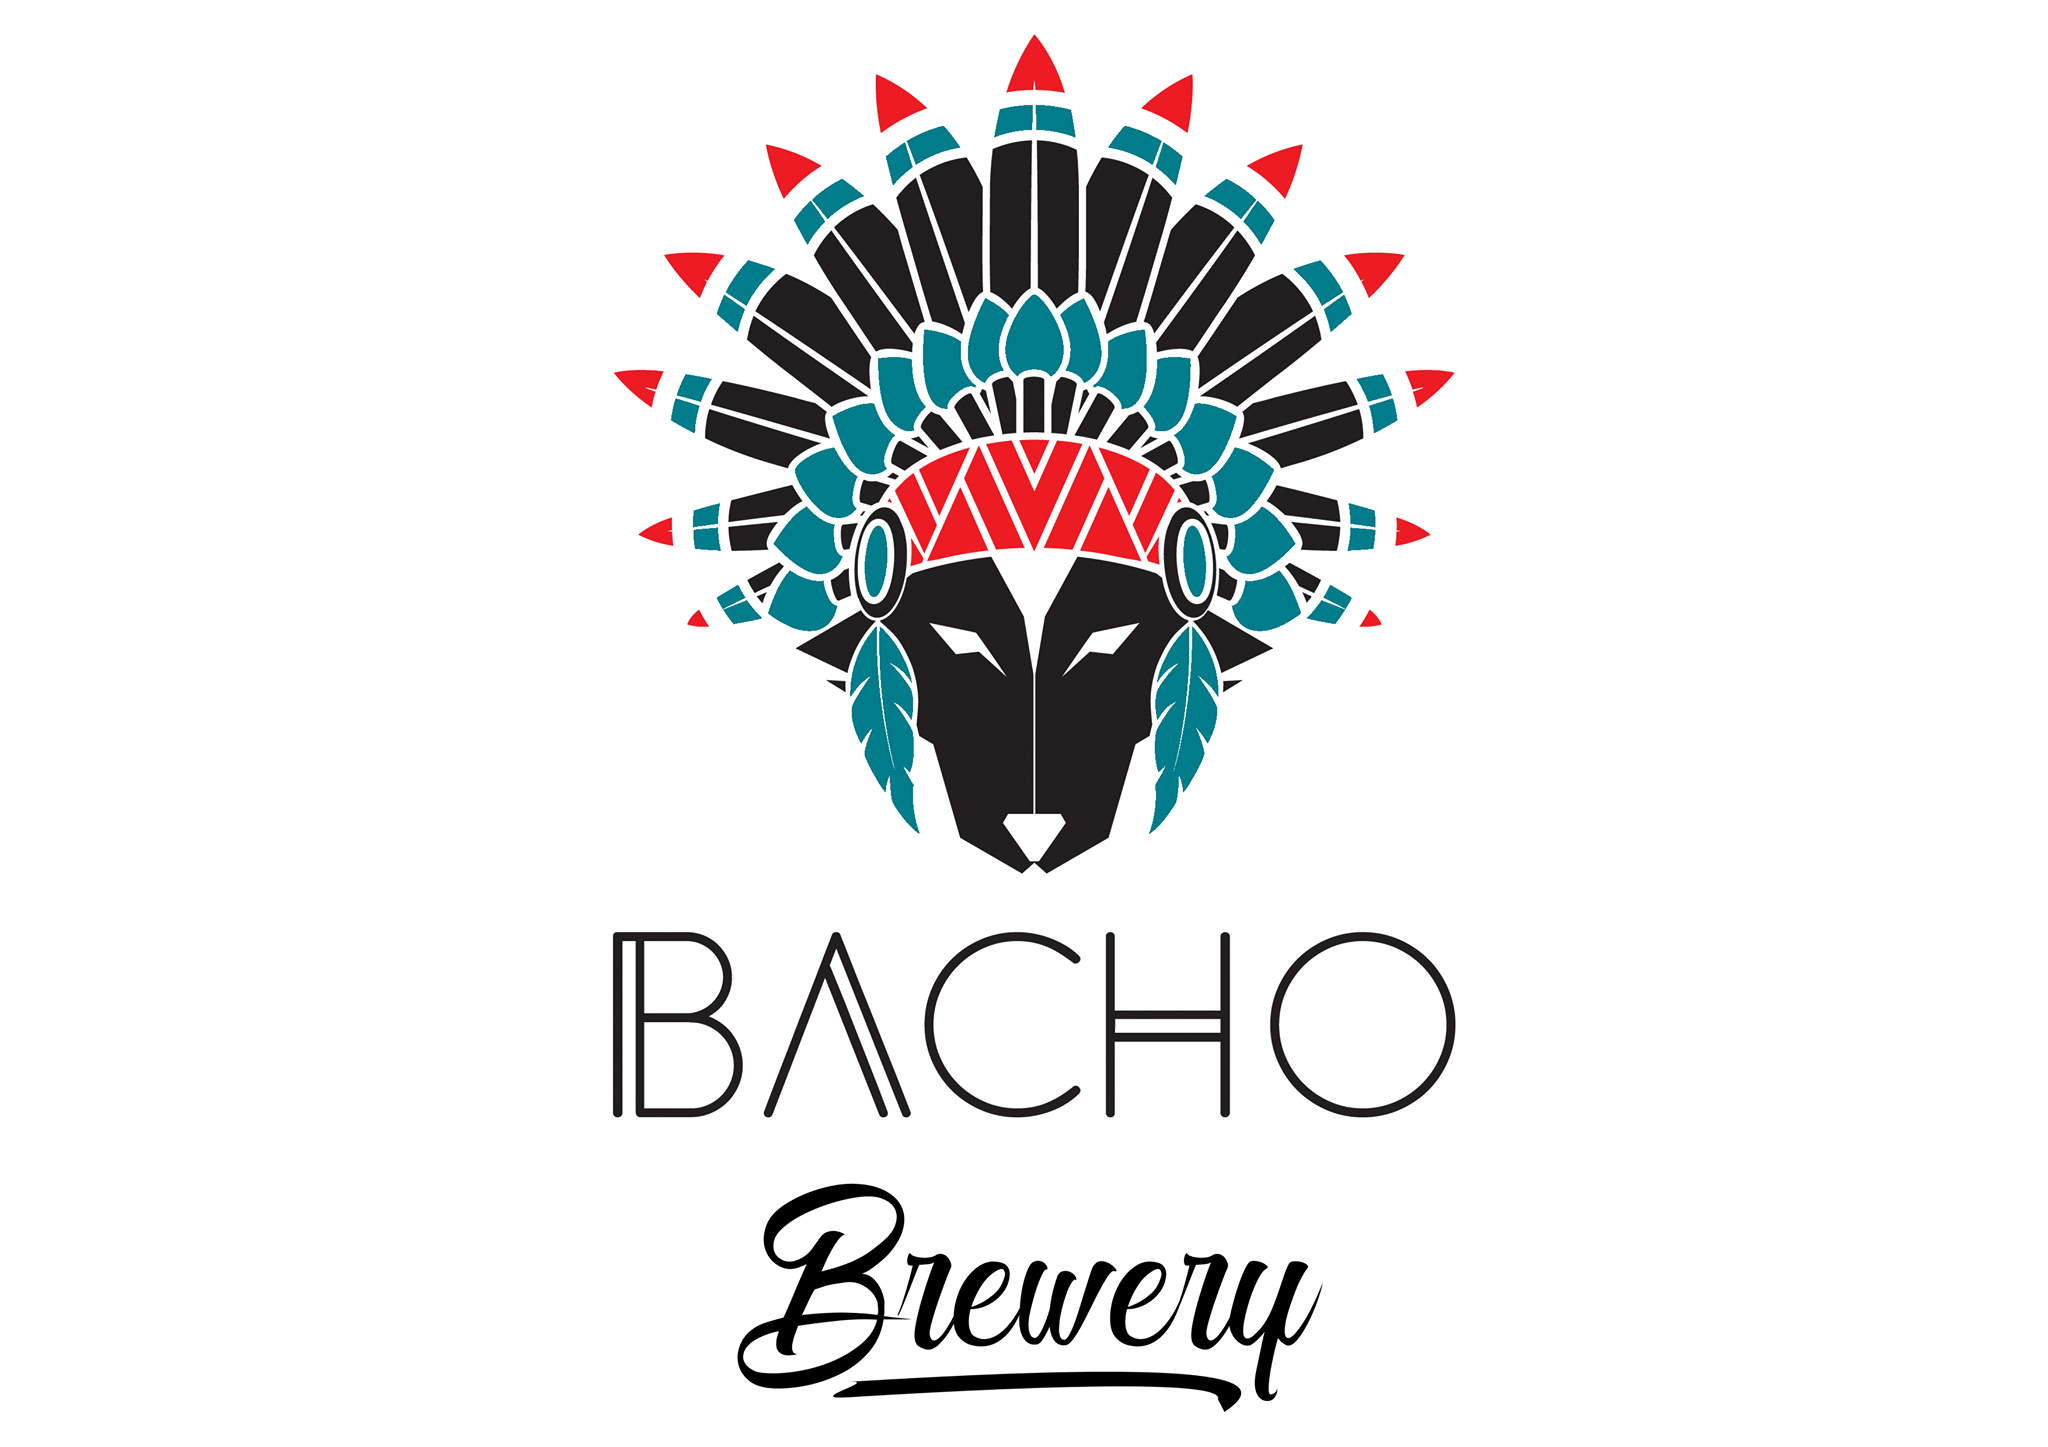 Bacho Brewery